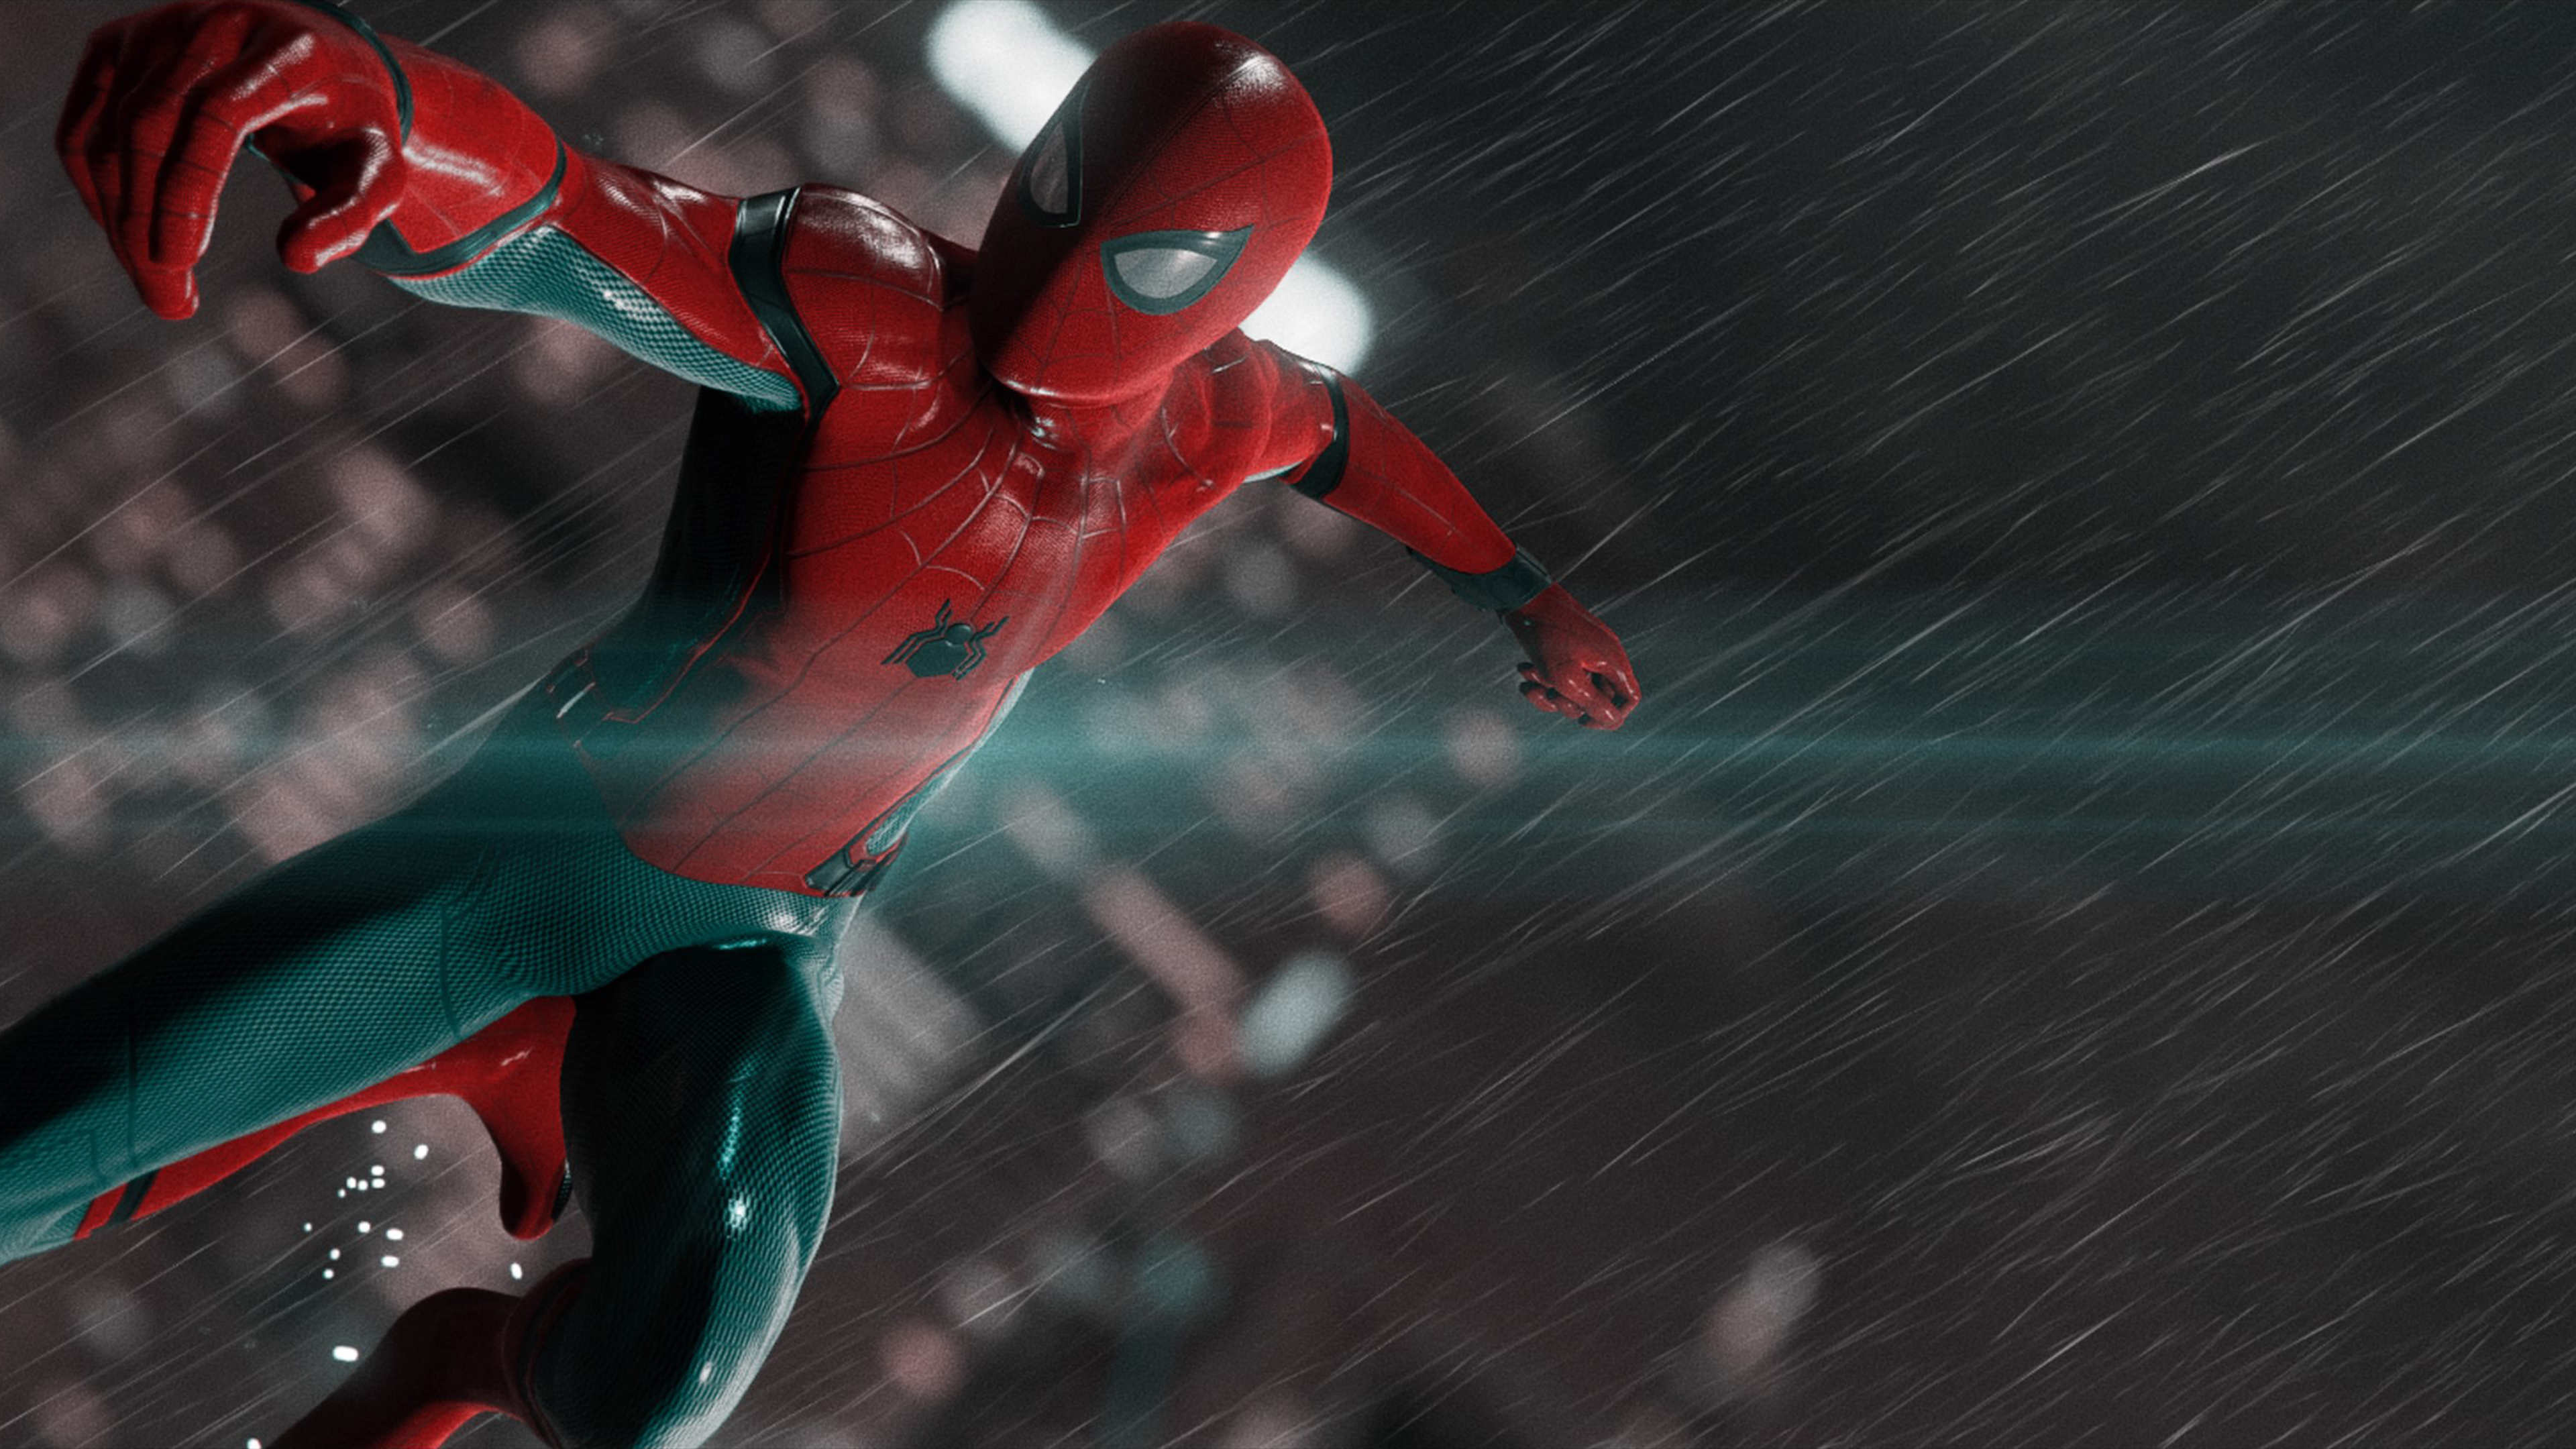 Wallpaper 4k Spiderman In The Rain 4k 4k Wallpapers Hd Wallpapers Reddit Wallpapers Spiderman Wallpapers Superheroes Wallpapers